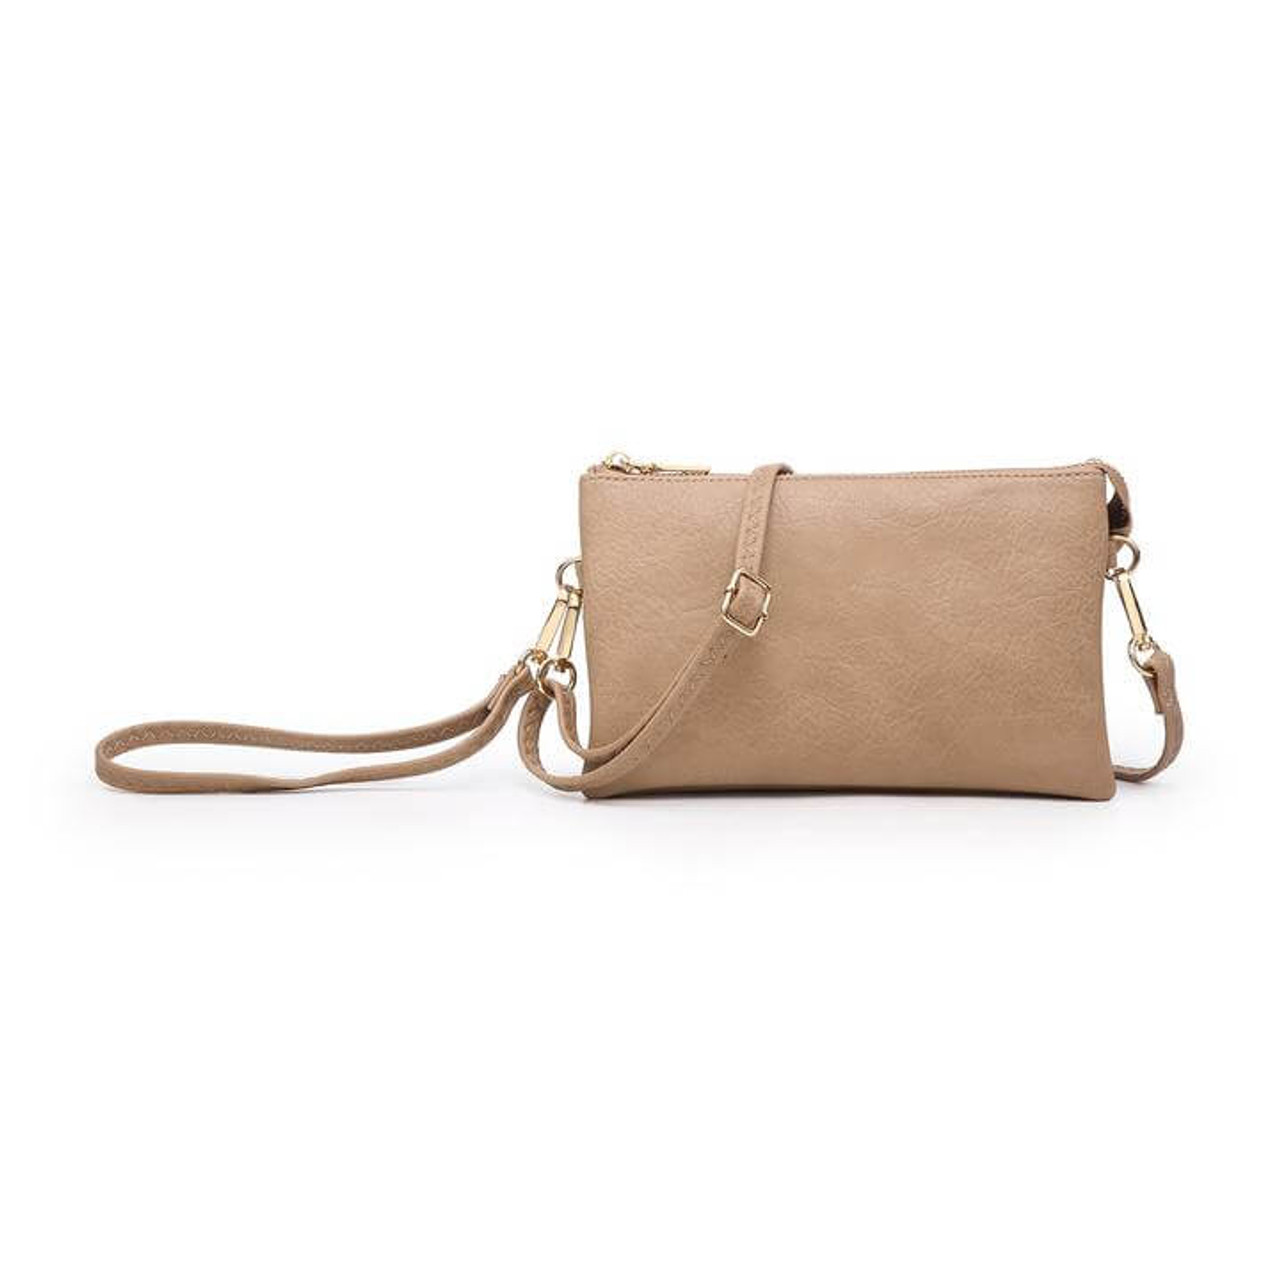 Wristlet and adjustable crossbody strap included. Three separate interior compartments with six credit card slots. Top zipper closure.